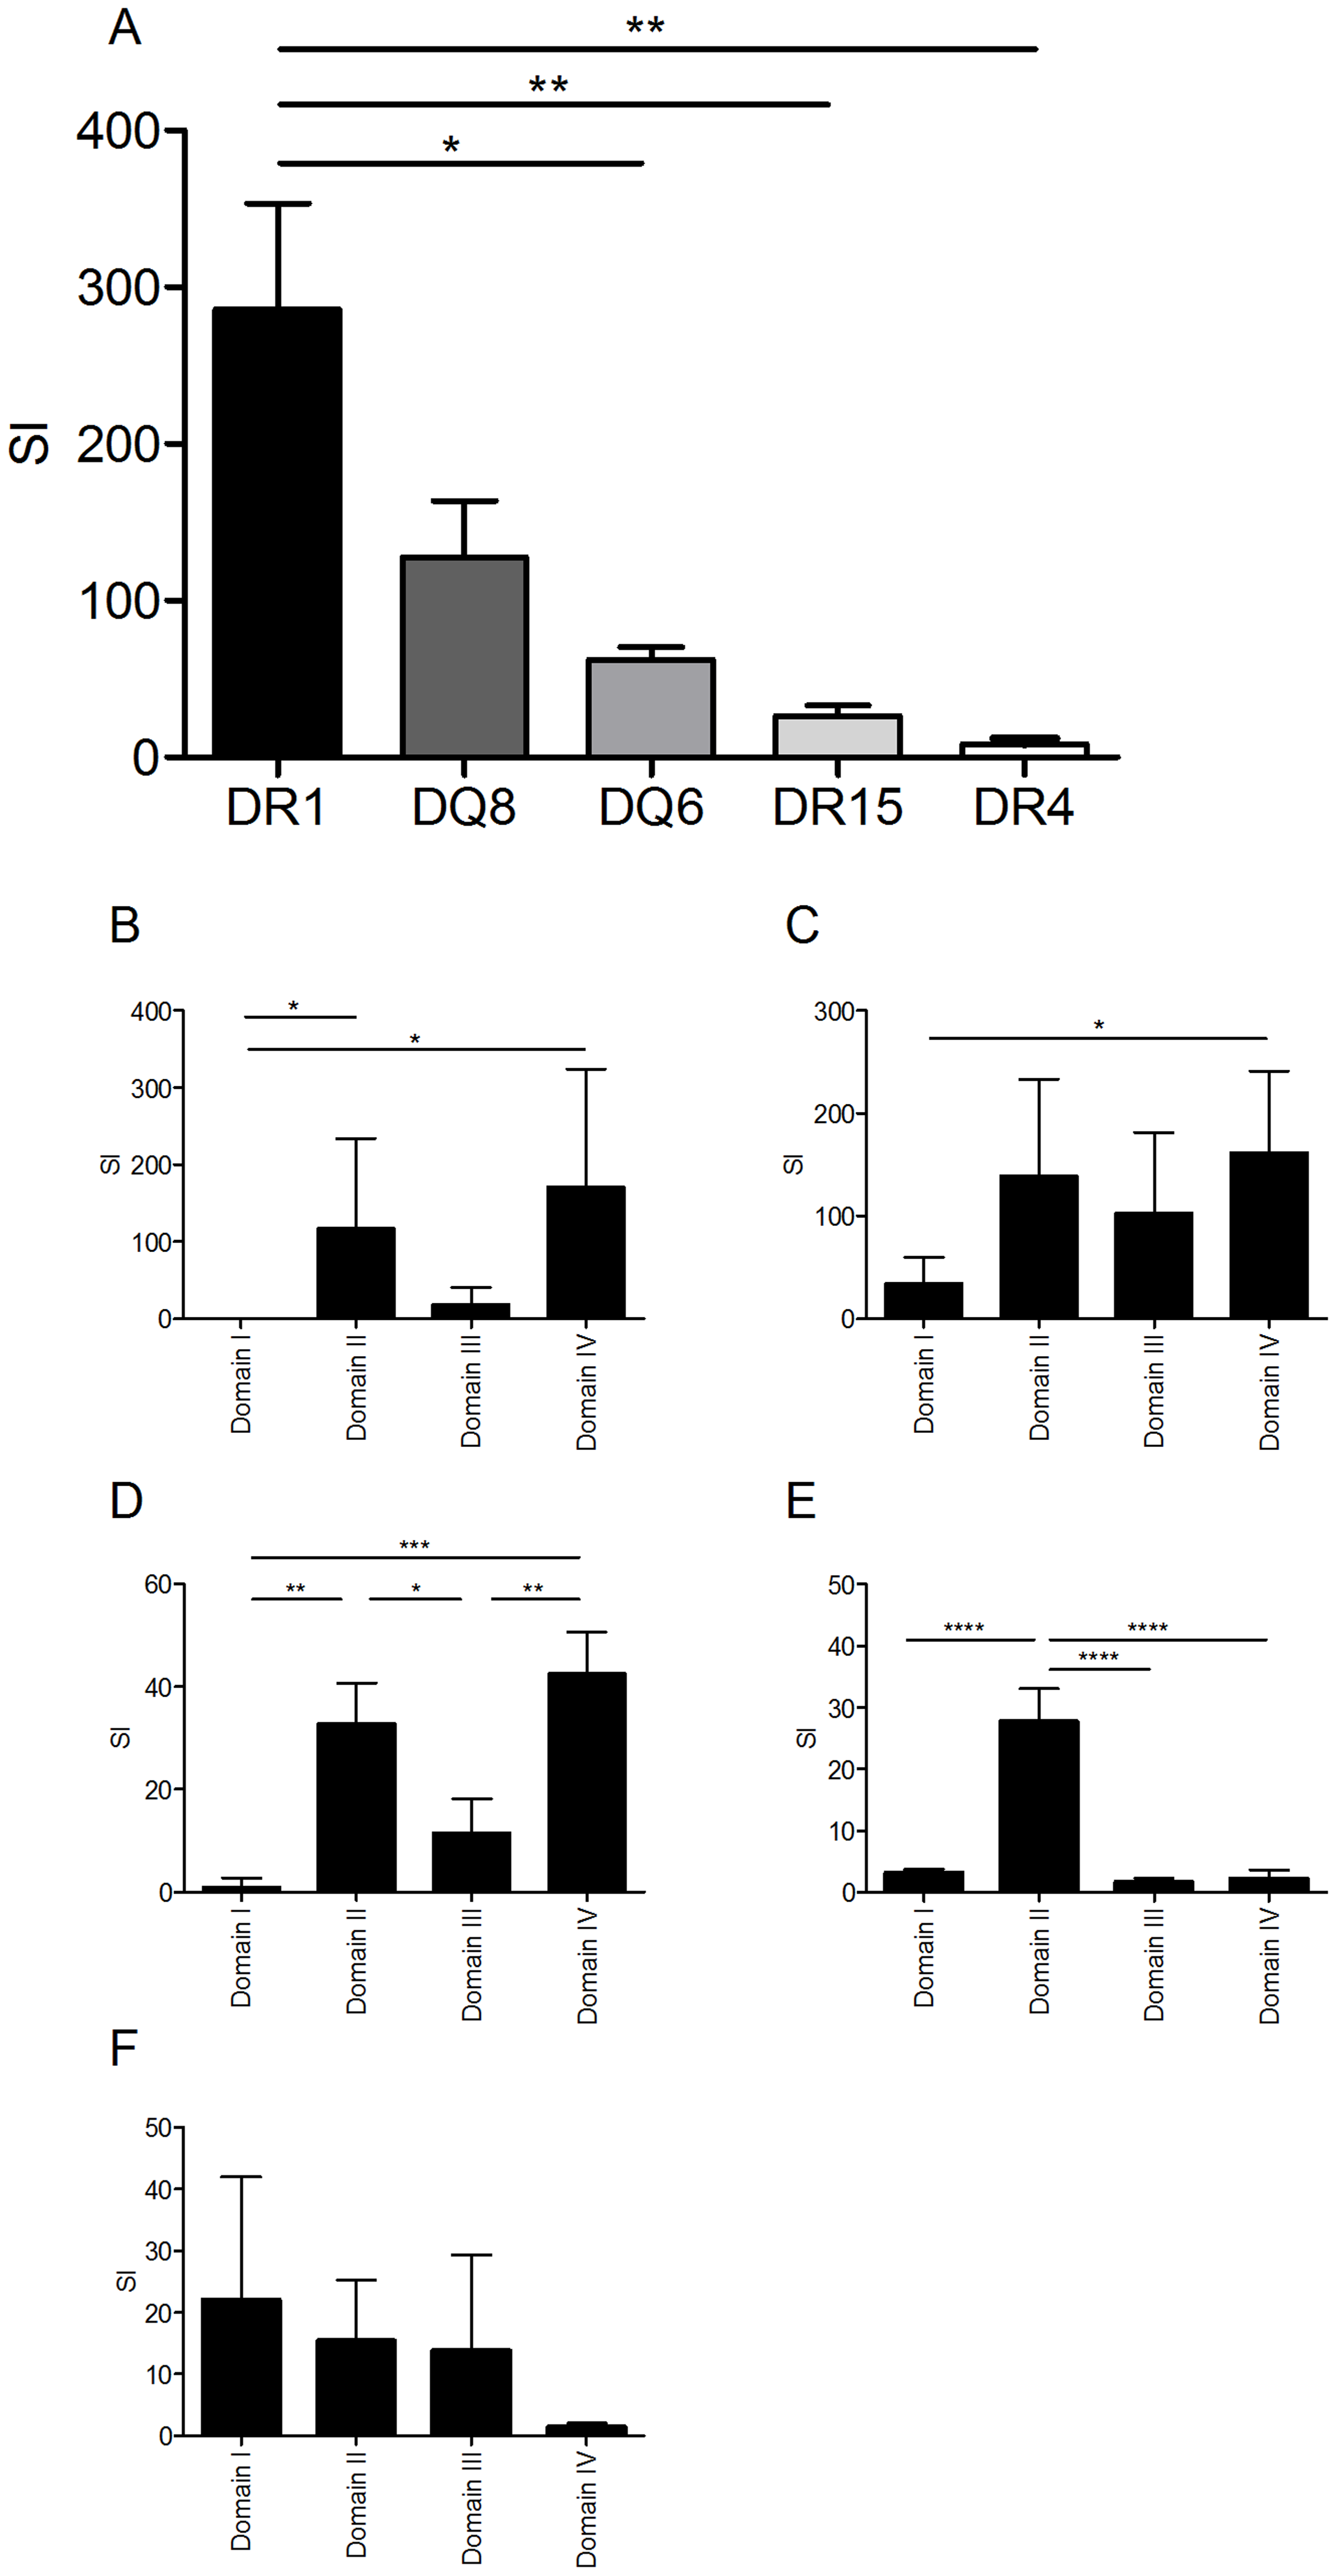 HLA transgenic mice immunized with LF generate an antigen-specific memory response to the LF protein and domains which follows an HLA hierarchy and predominantly focuses upon domains II and IV.